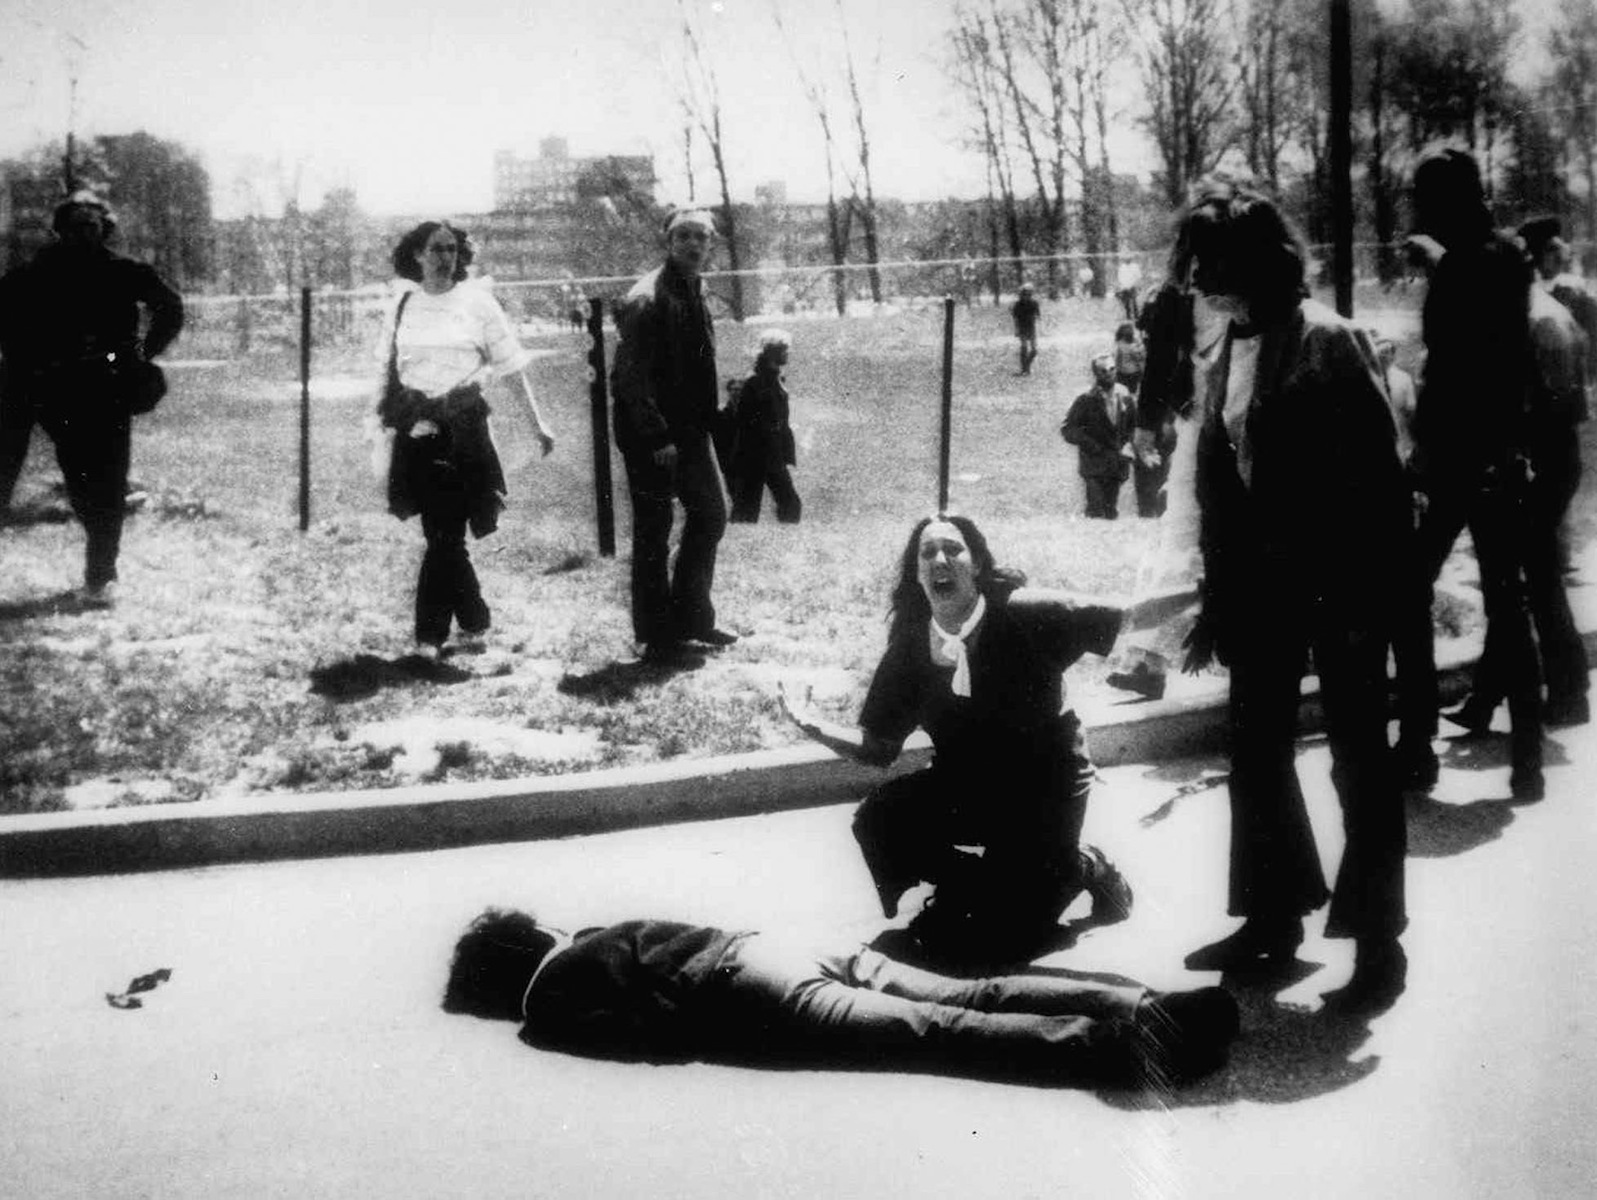 Mary Ann Vecchio kneels by the body of a student lying face down on the campus of Kent State University, Kent, Ohio on May 4, 1970.